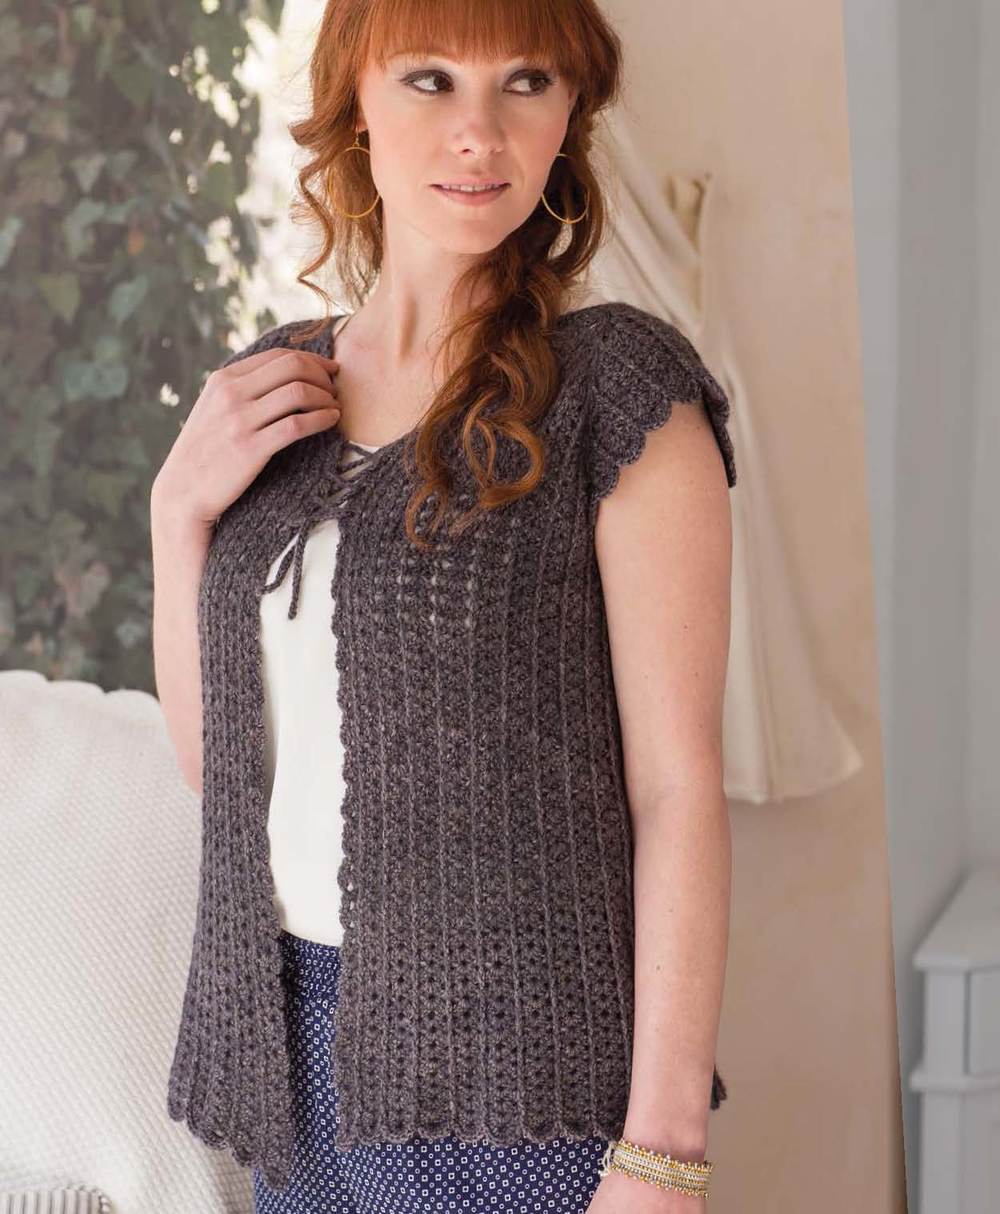 Crochet So Lovely -  Corset-Tied Cardi beauty shot.jpg